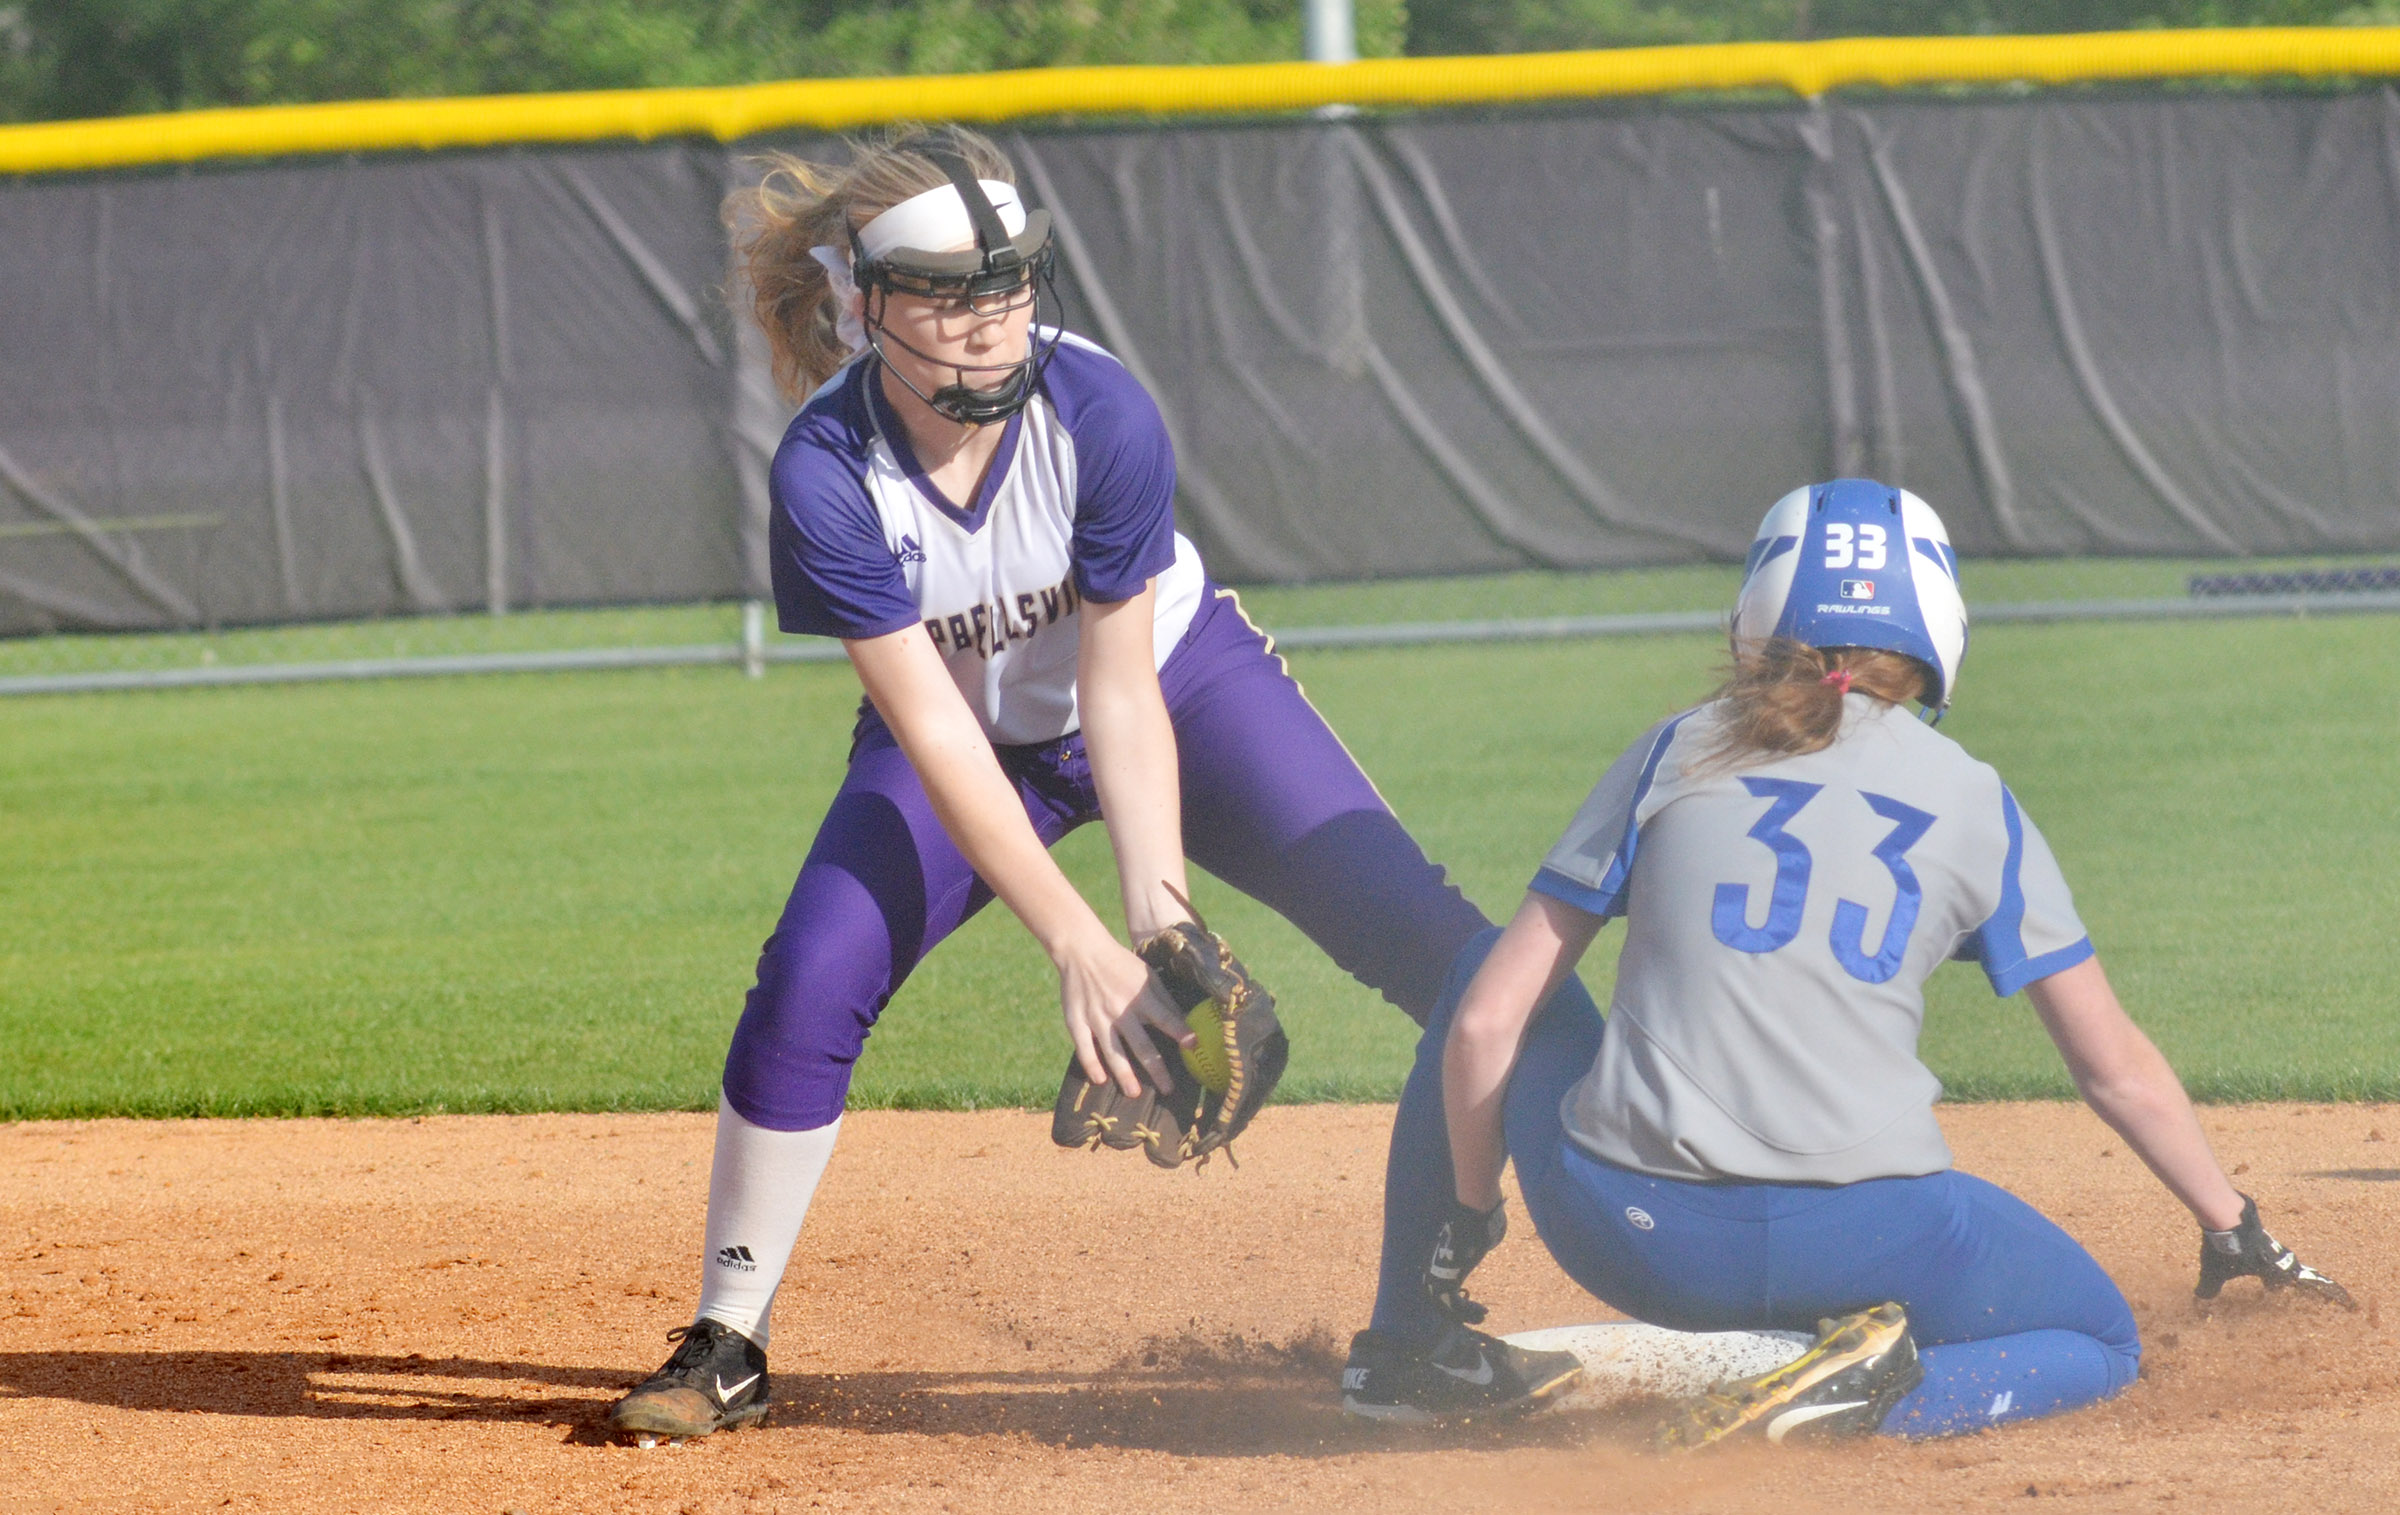 Campbellsville Middle School eighth-grader Catlyn Clausen gets an out at second.